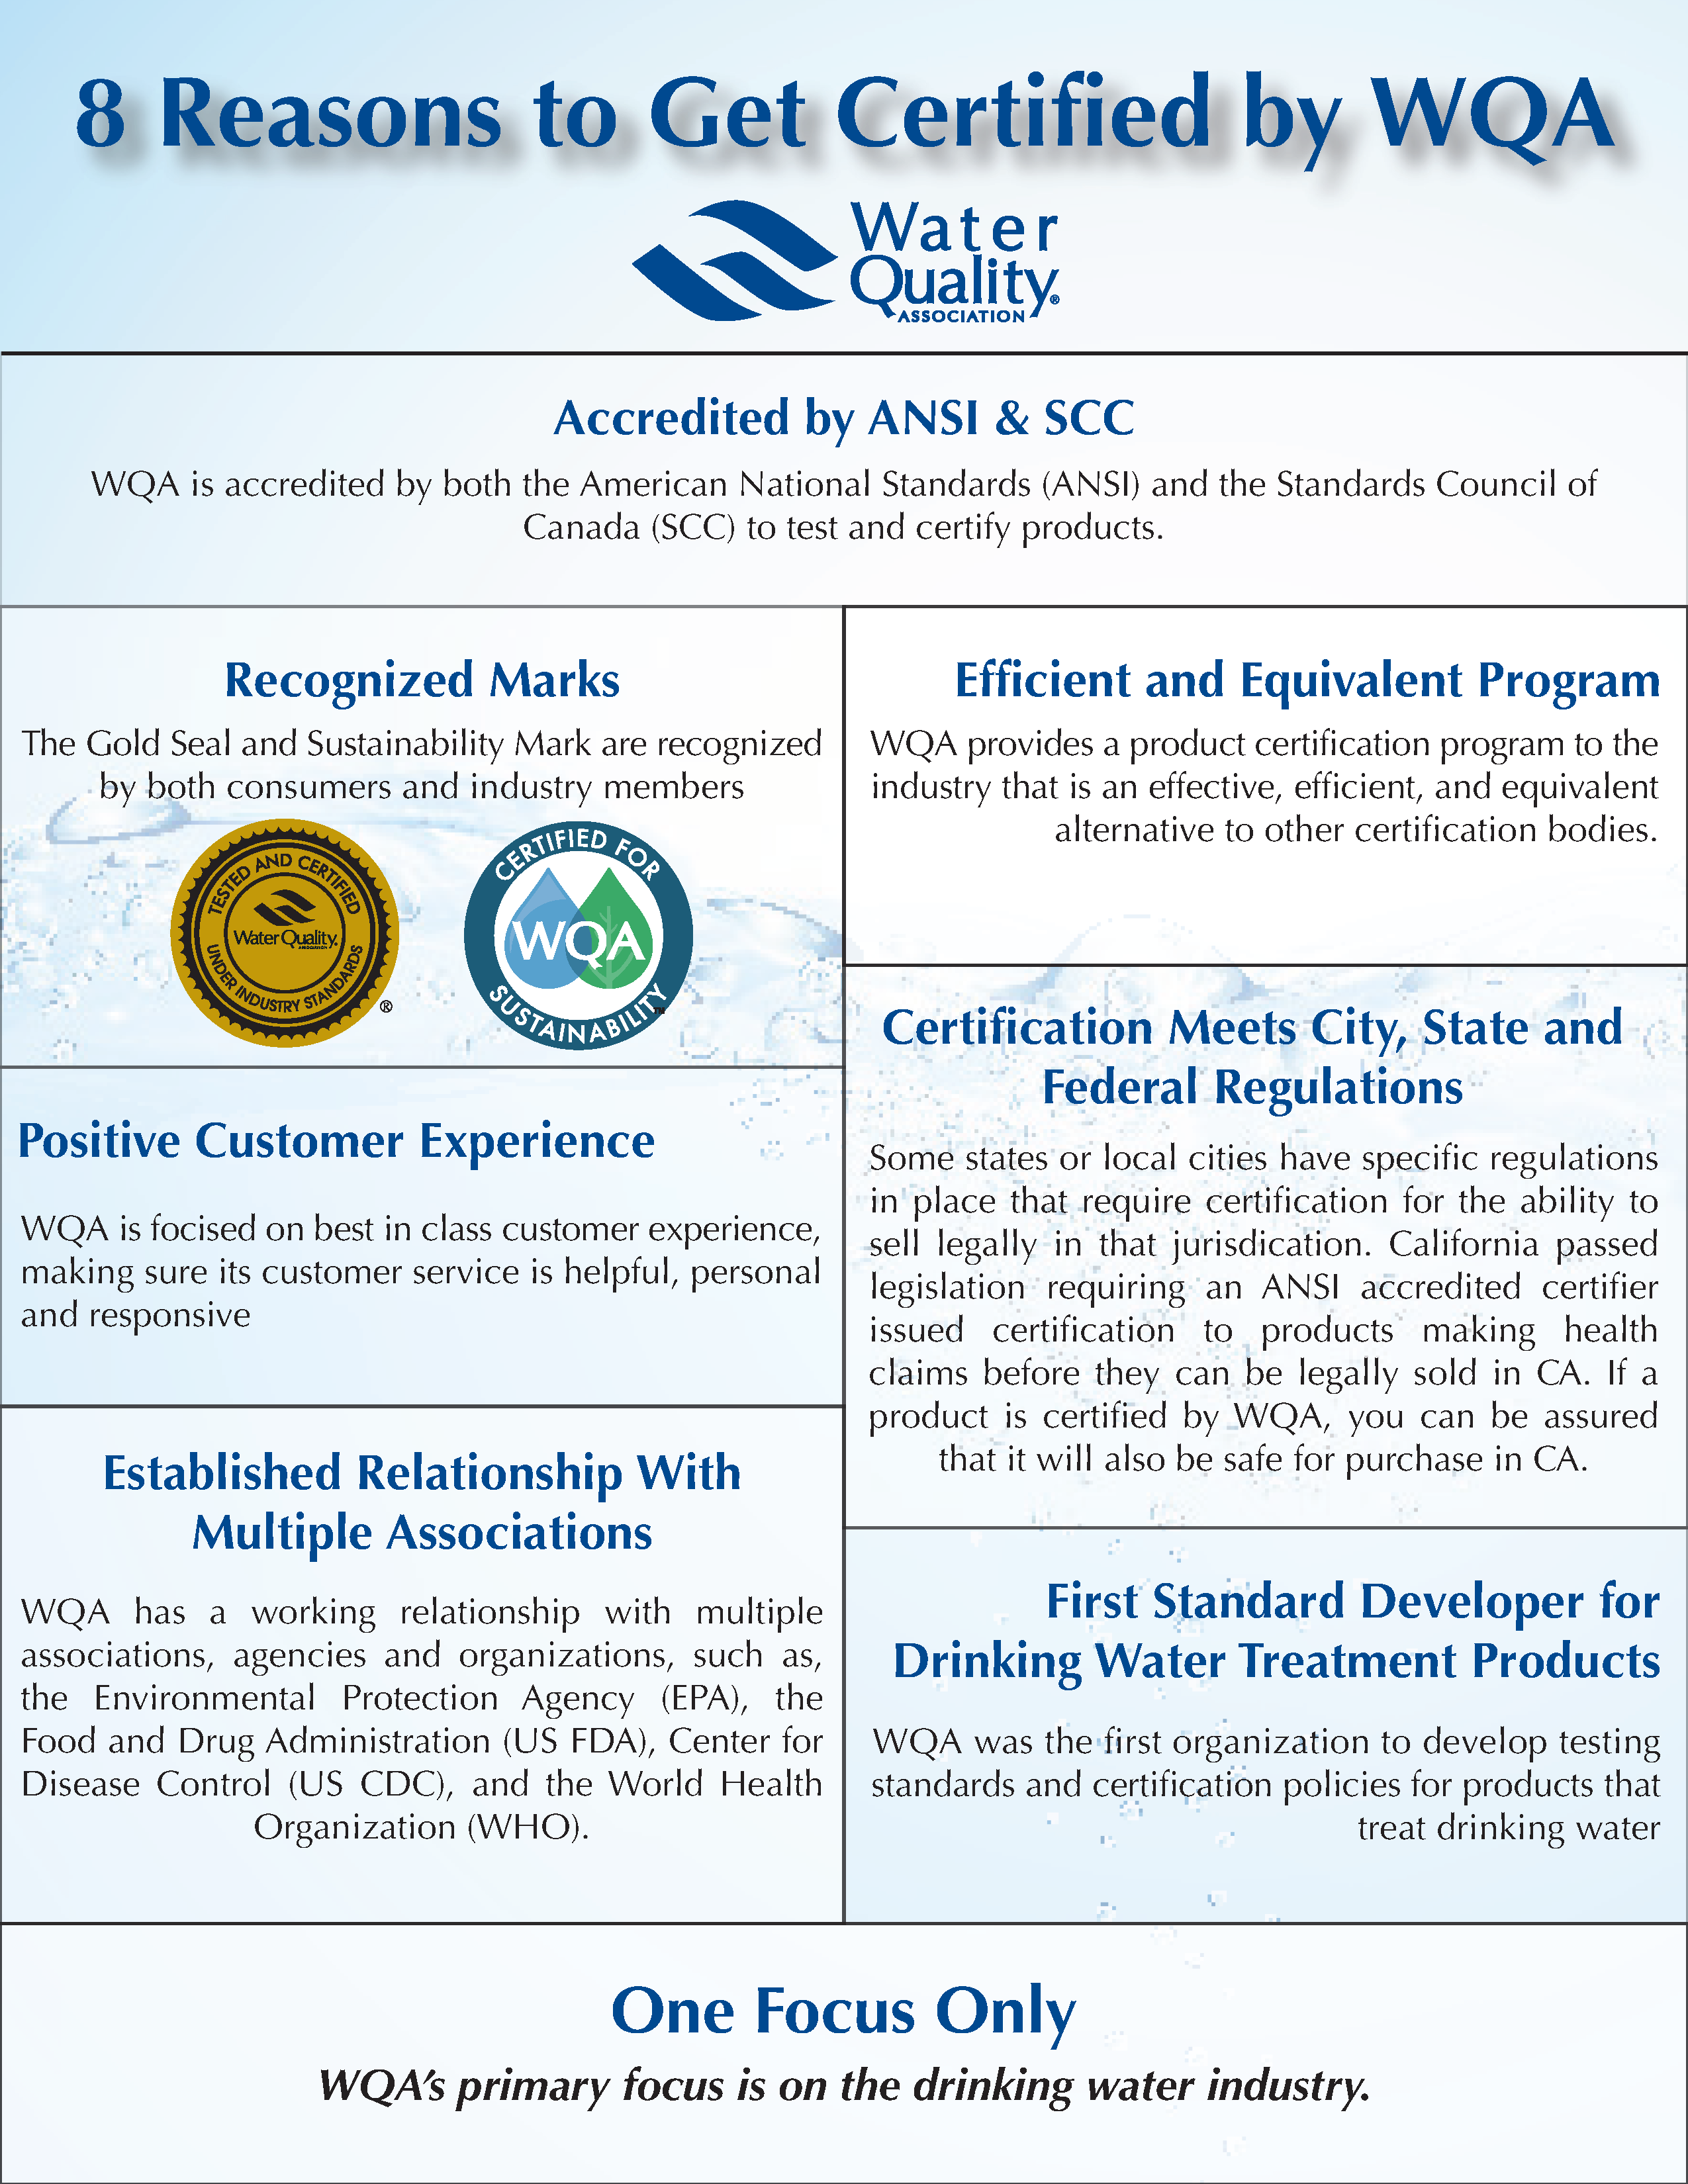 Clearing the Air (or Water) About Product Certification Bodies